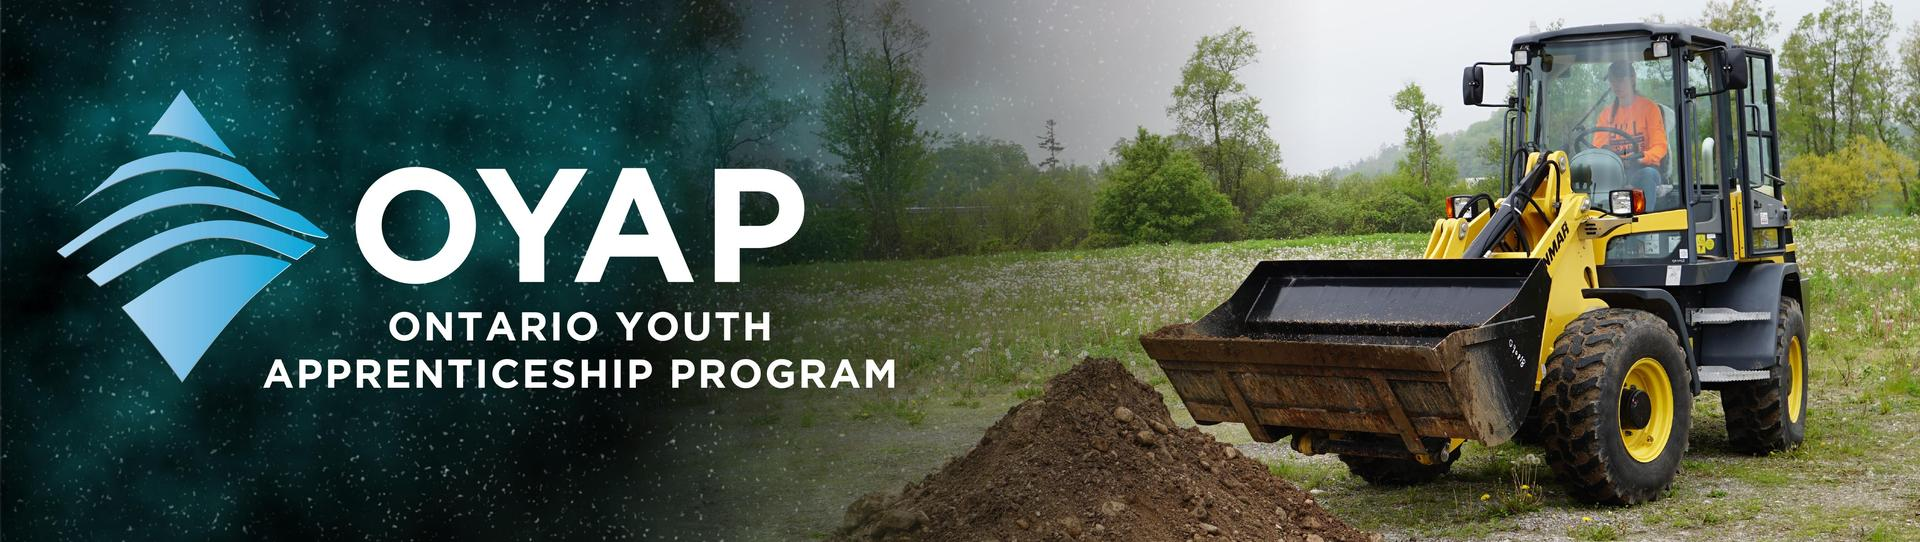 OYAP Ontario Youth Apprenticeship program logo. Image of student driving a backhoe.